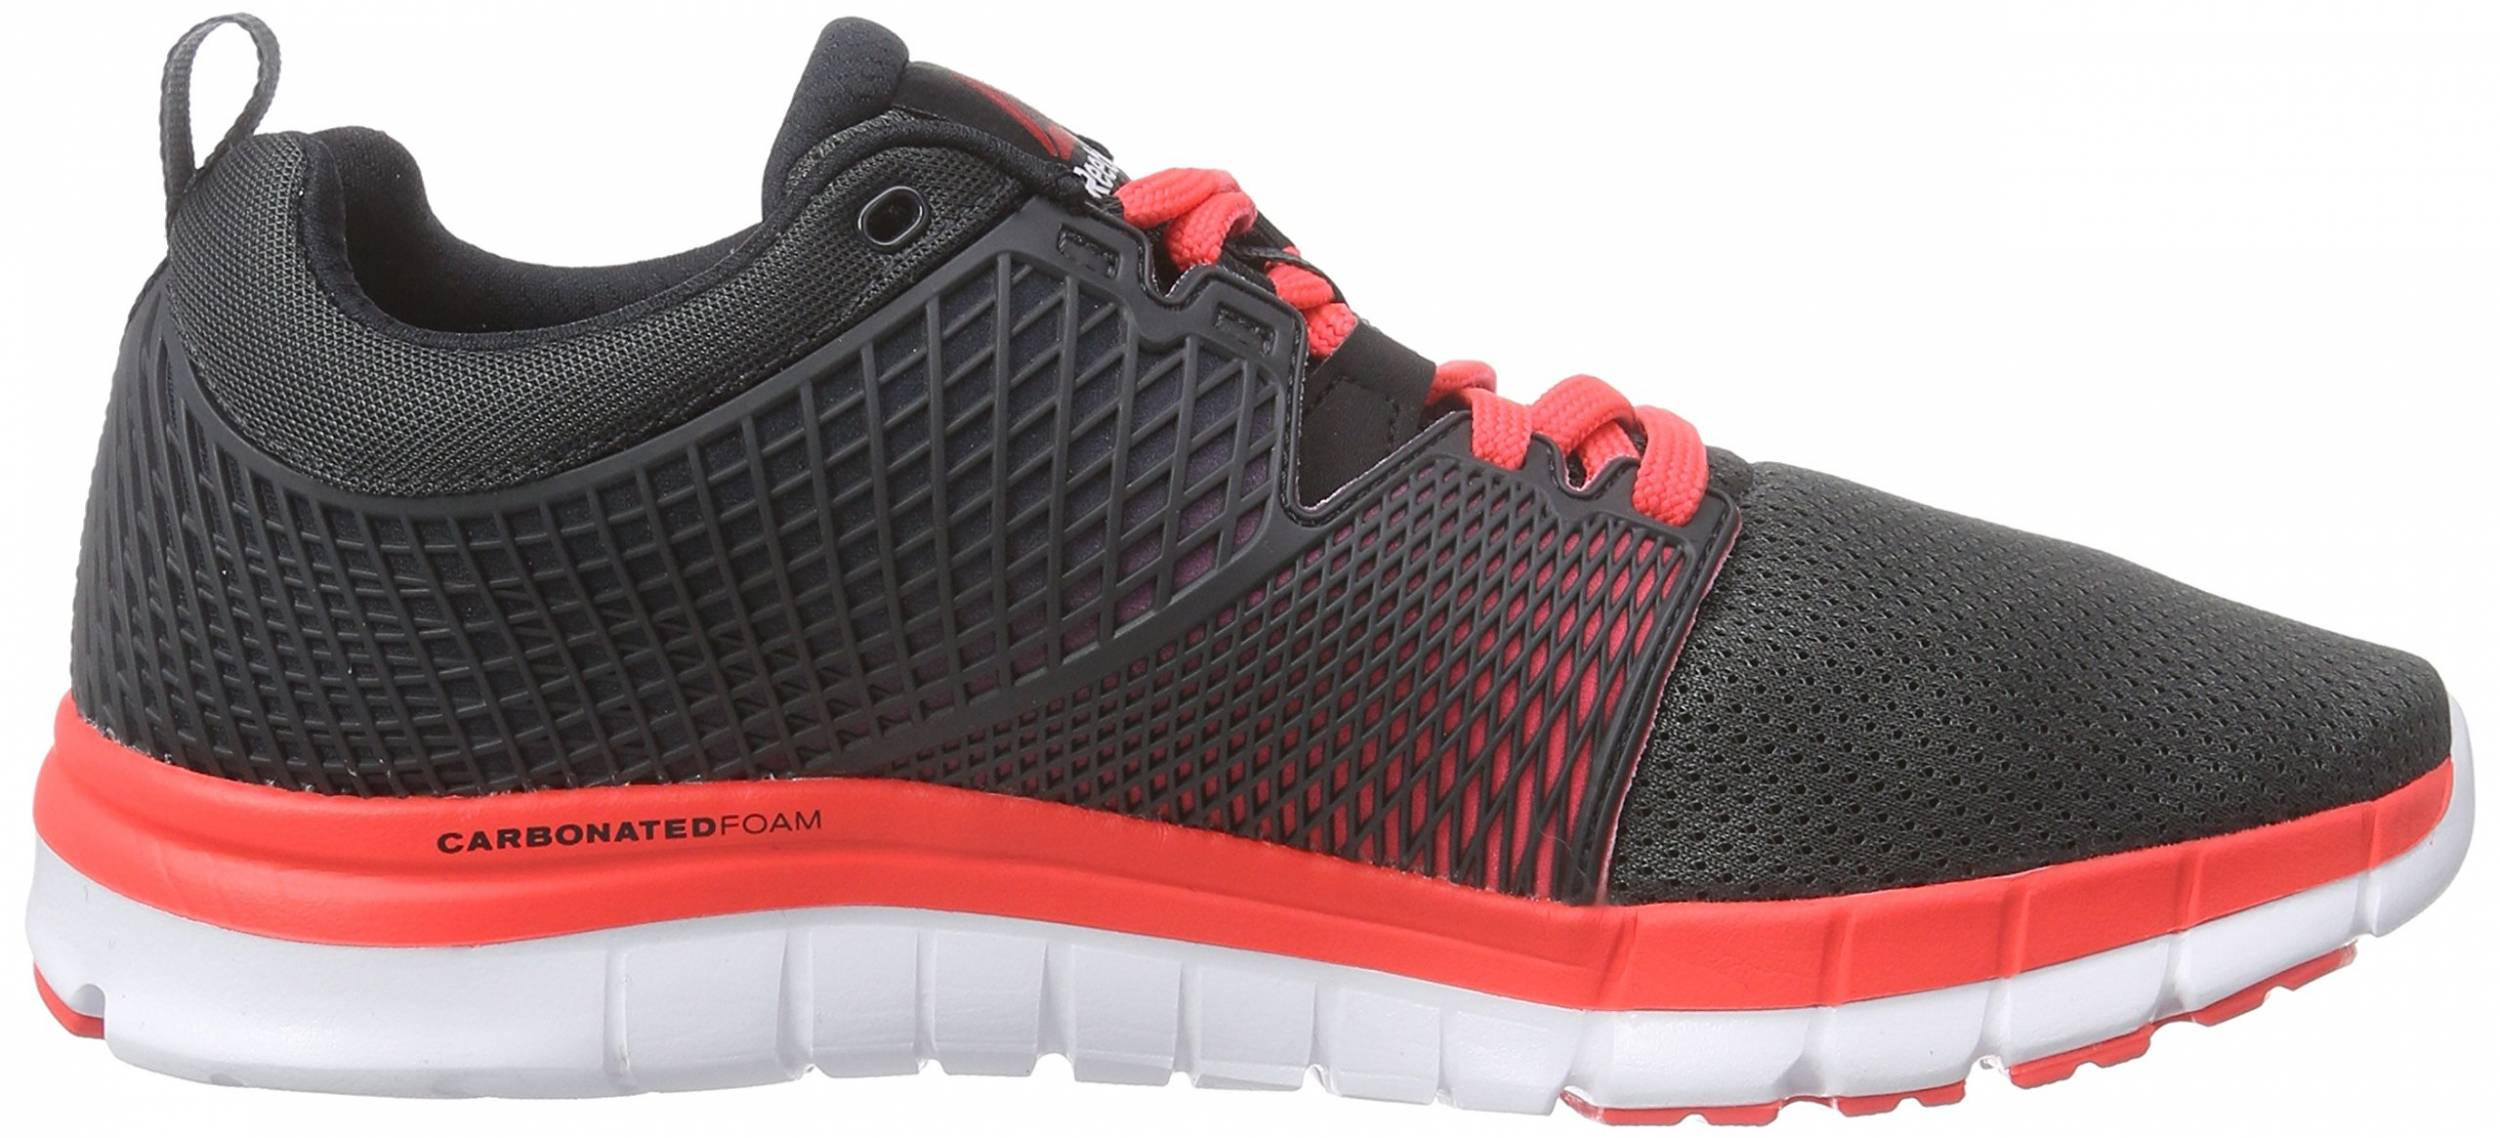 Intacto Trampolín clima  Reebok Zquick Dash - Deals ($50), Facts, Reviews (2021) | RunRepeat